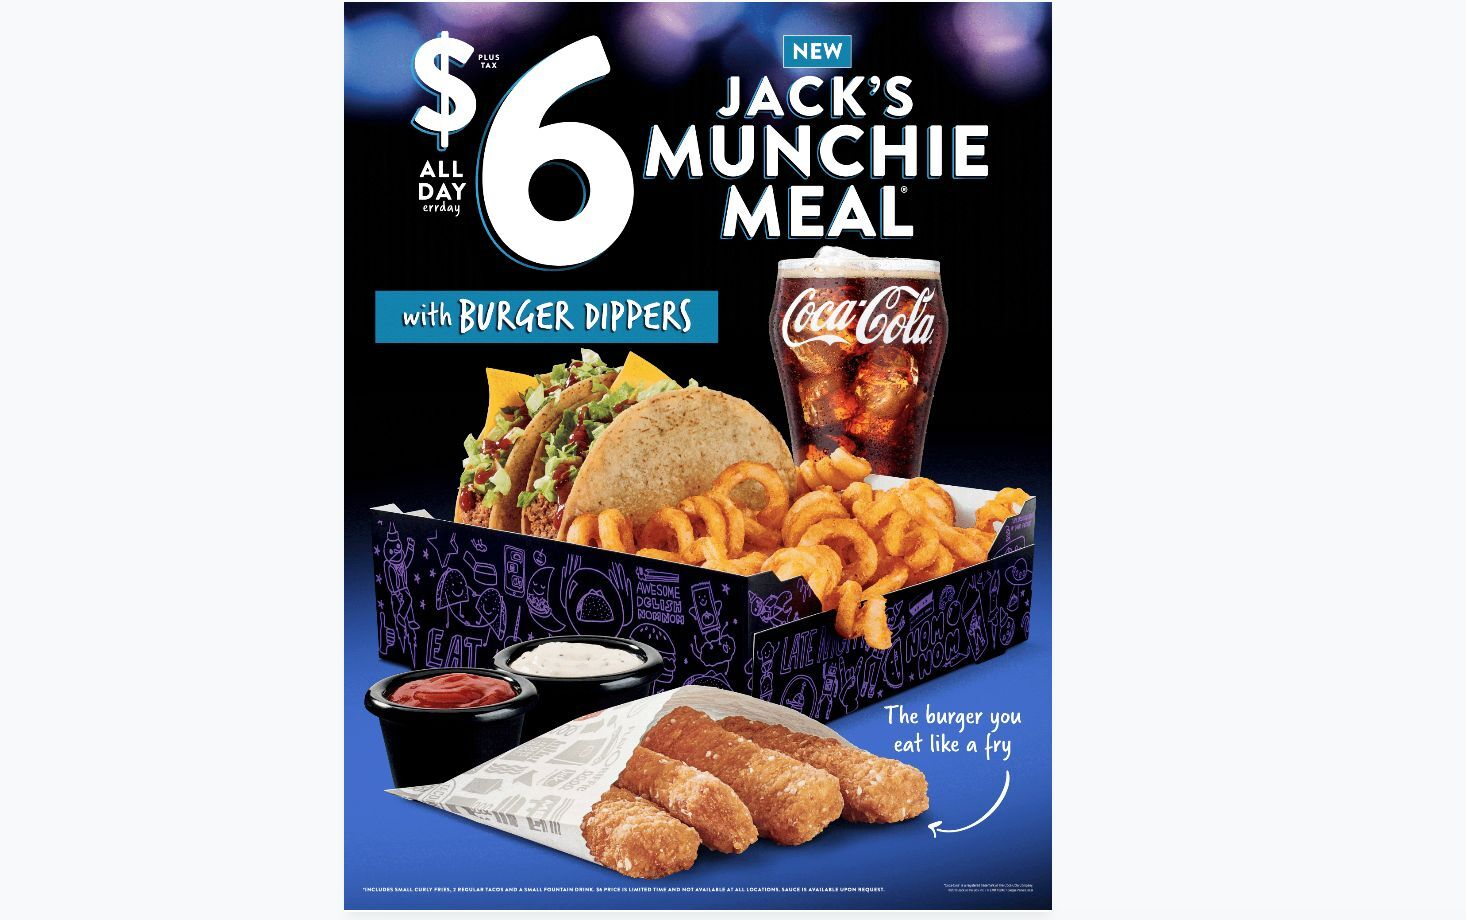 Jack in the Box: New Burger Dippers are a must-have